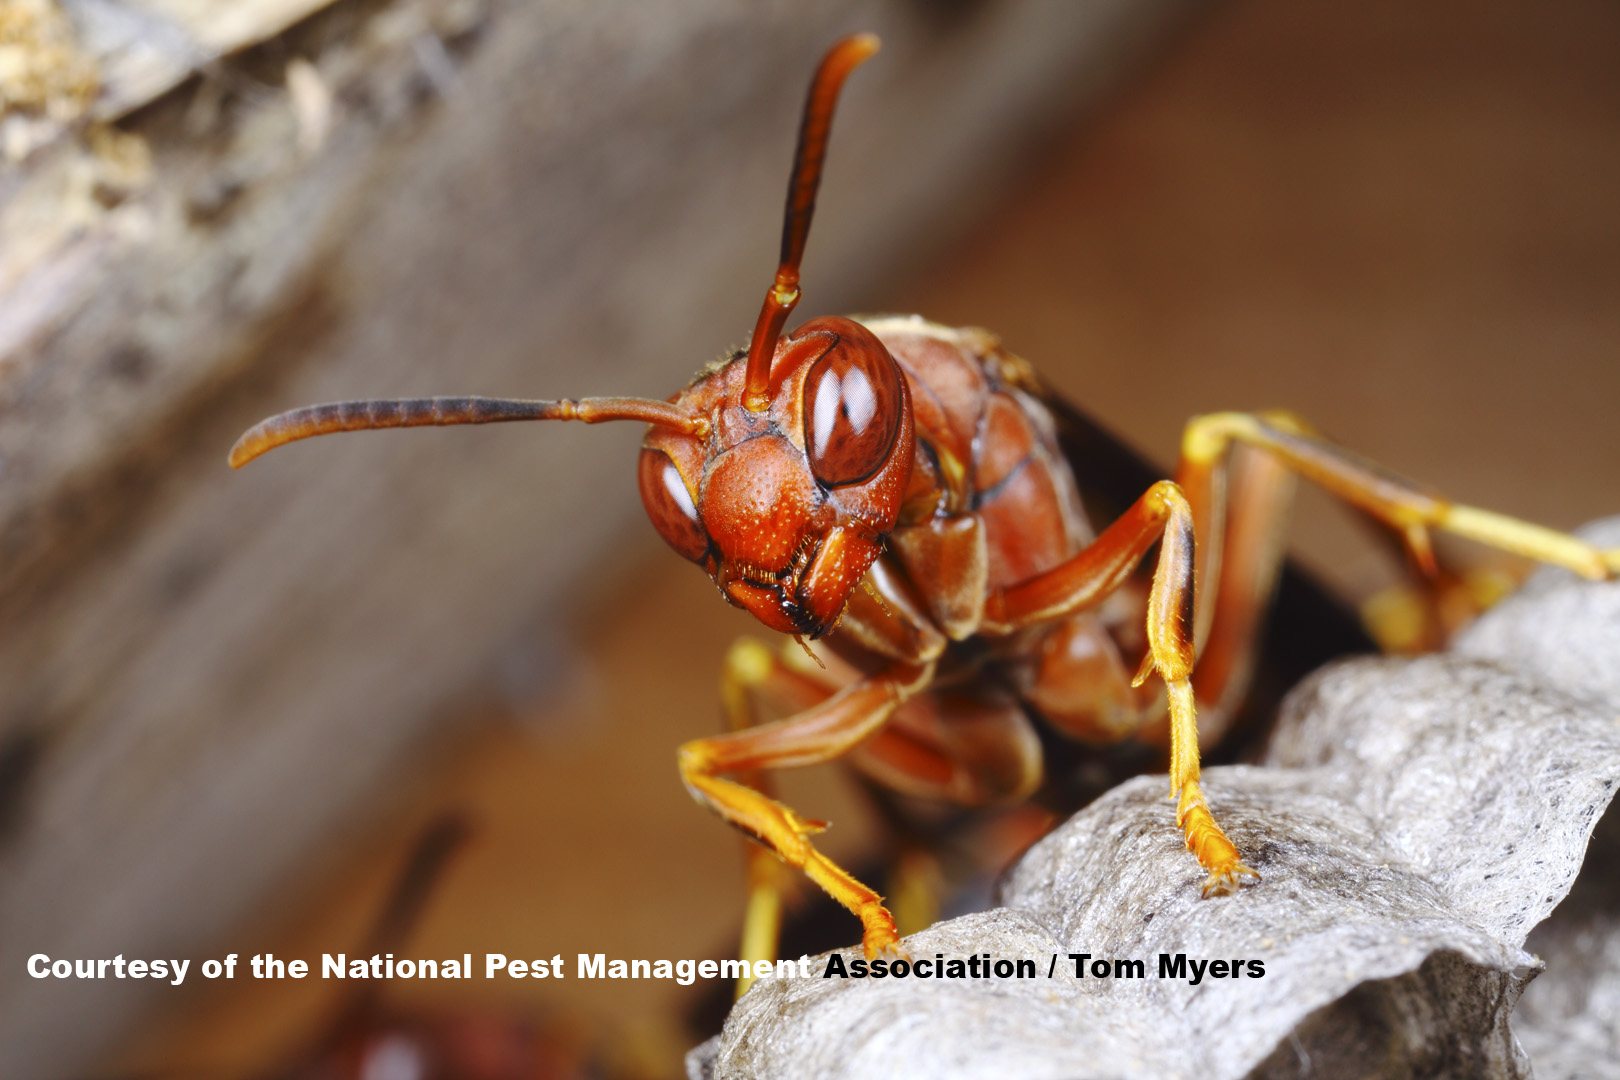 Paper wasp also wasps and bees  guide to identifying stinging insects pestworld rh